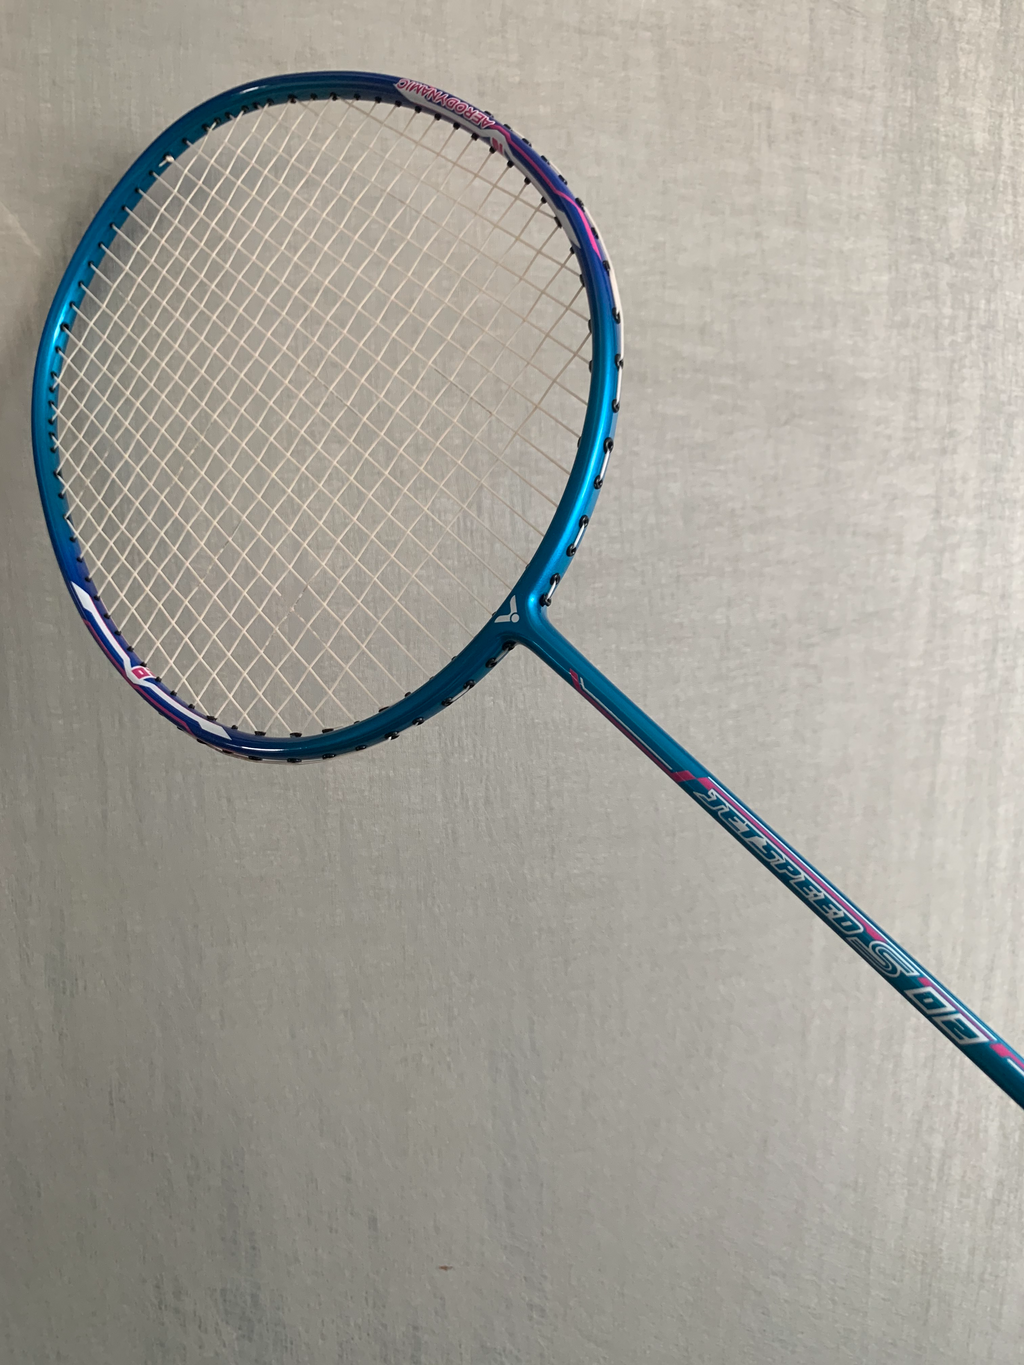 Victor Jetspeed S 02  Badminton Racket - badminton racket review